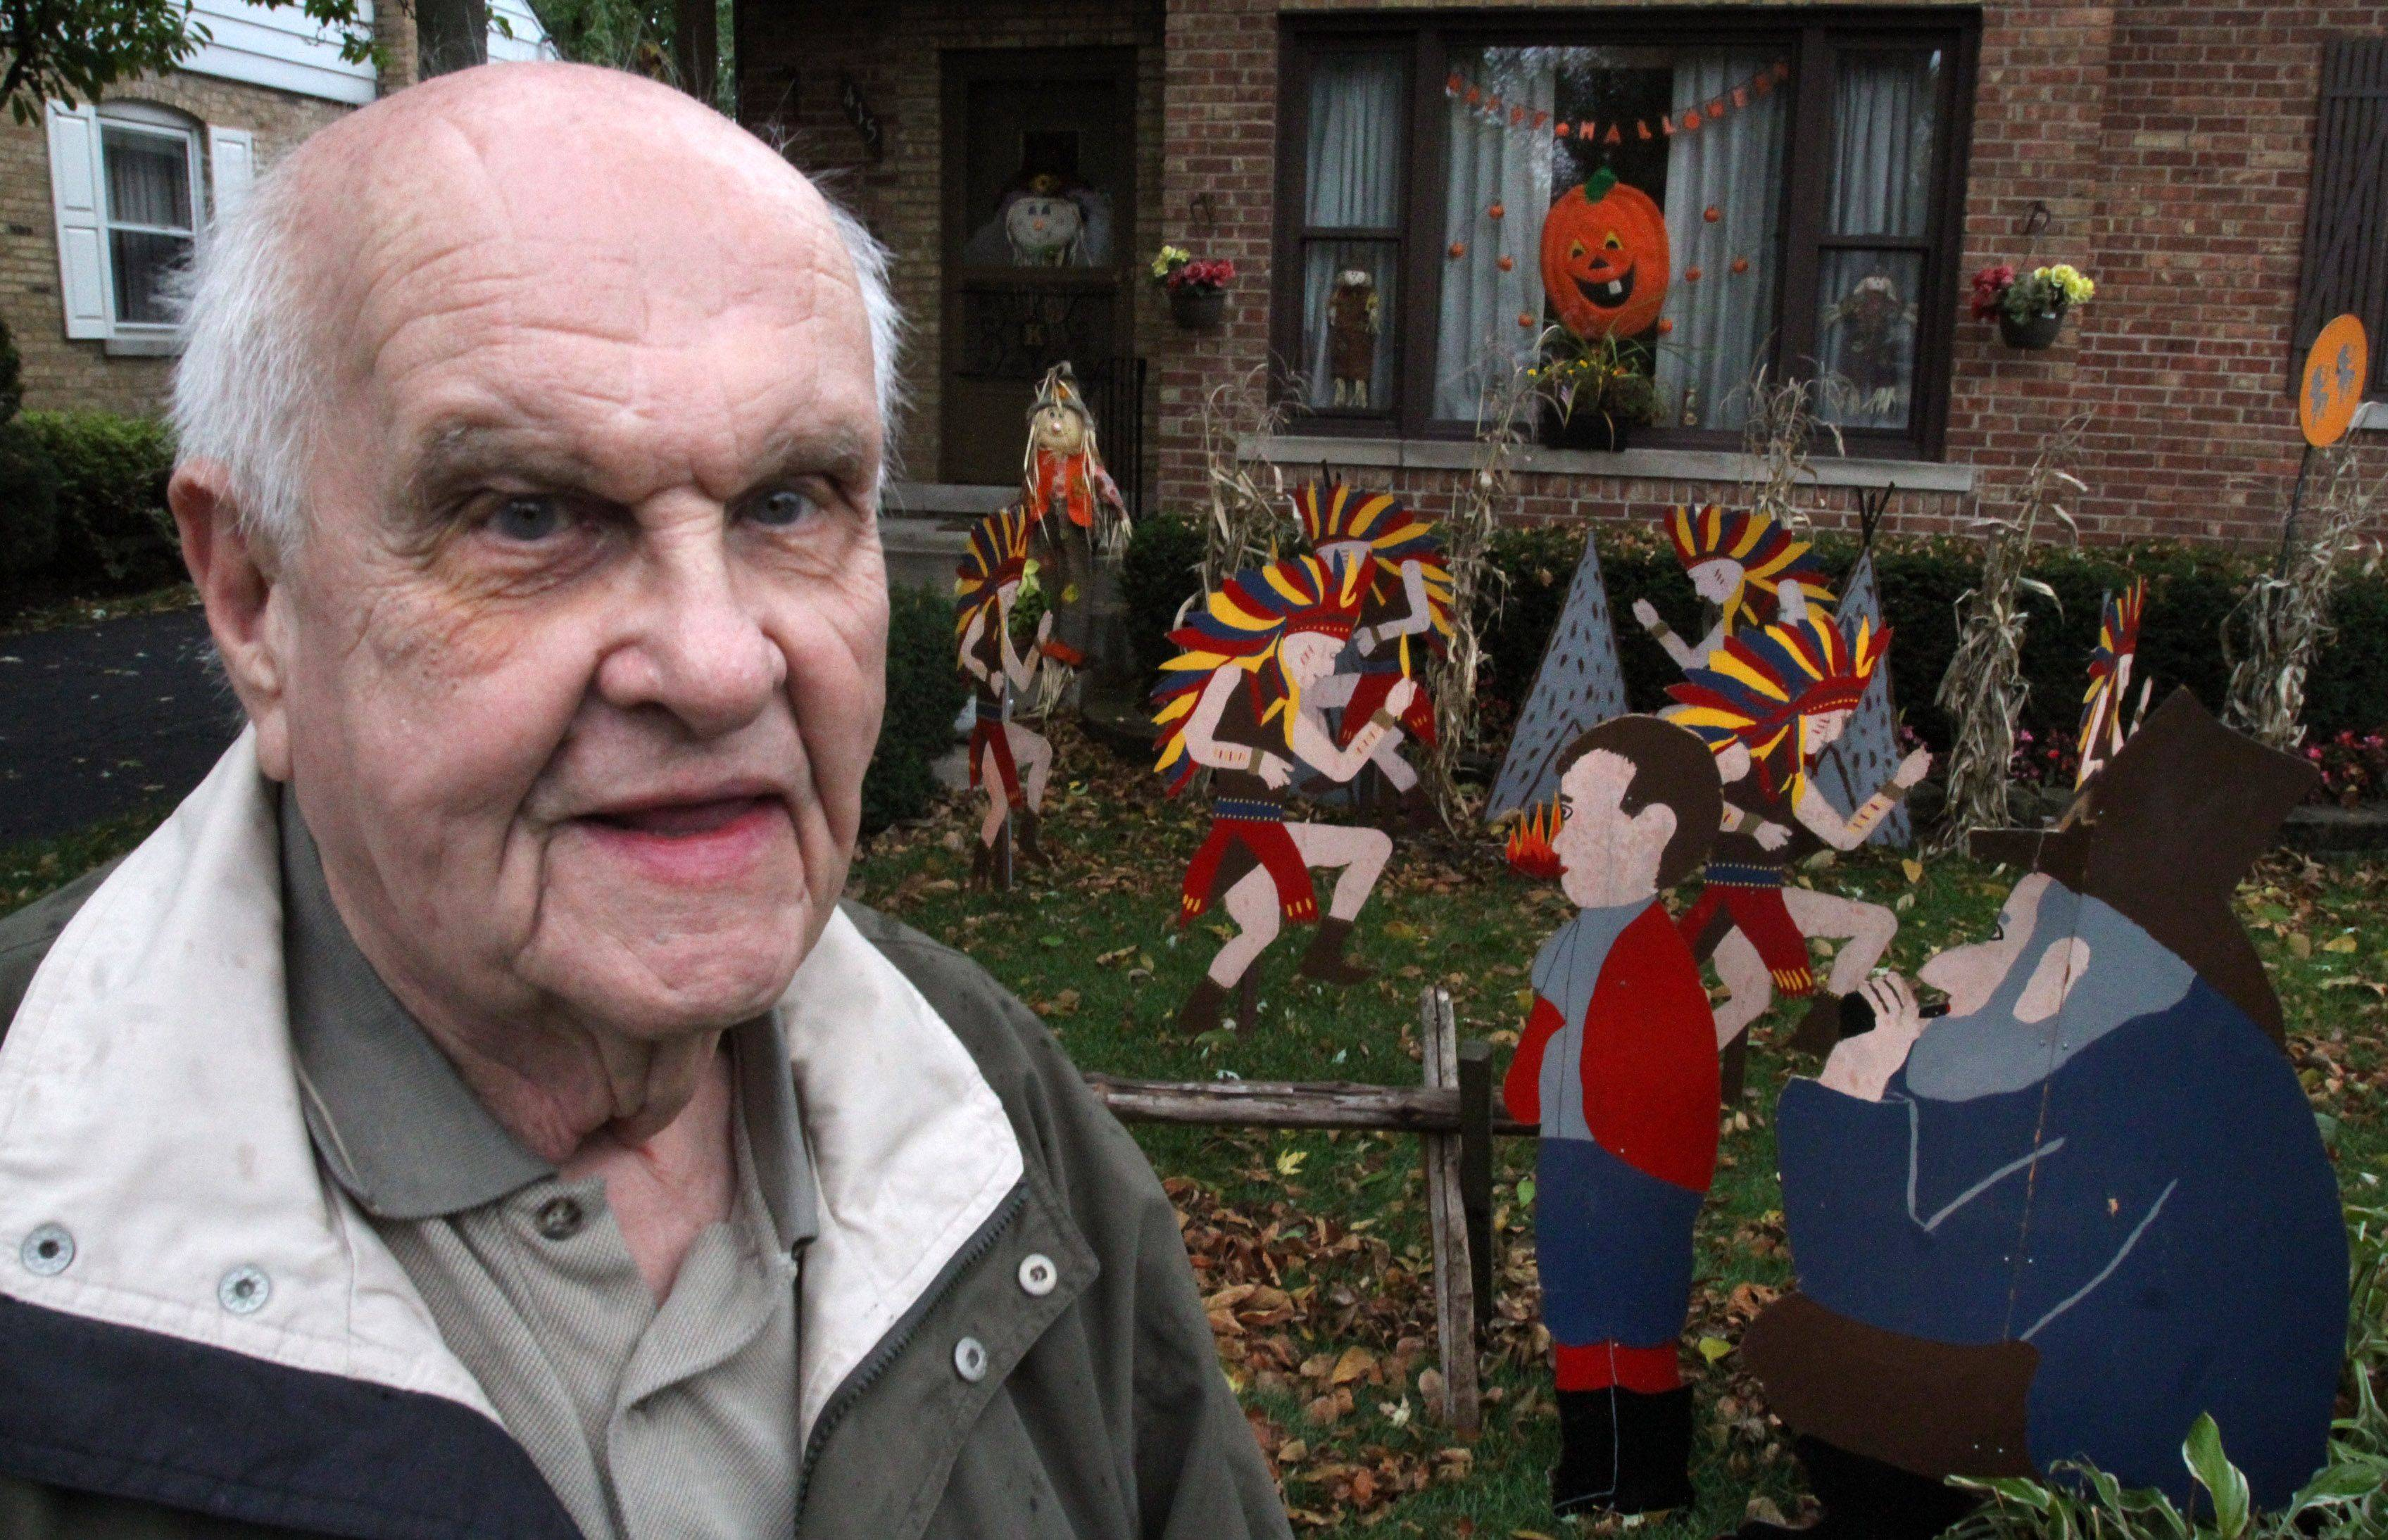 At 85, Kitzing has created a legend of his own, on his Mount Prospect block.